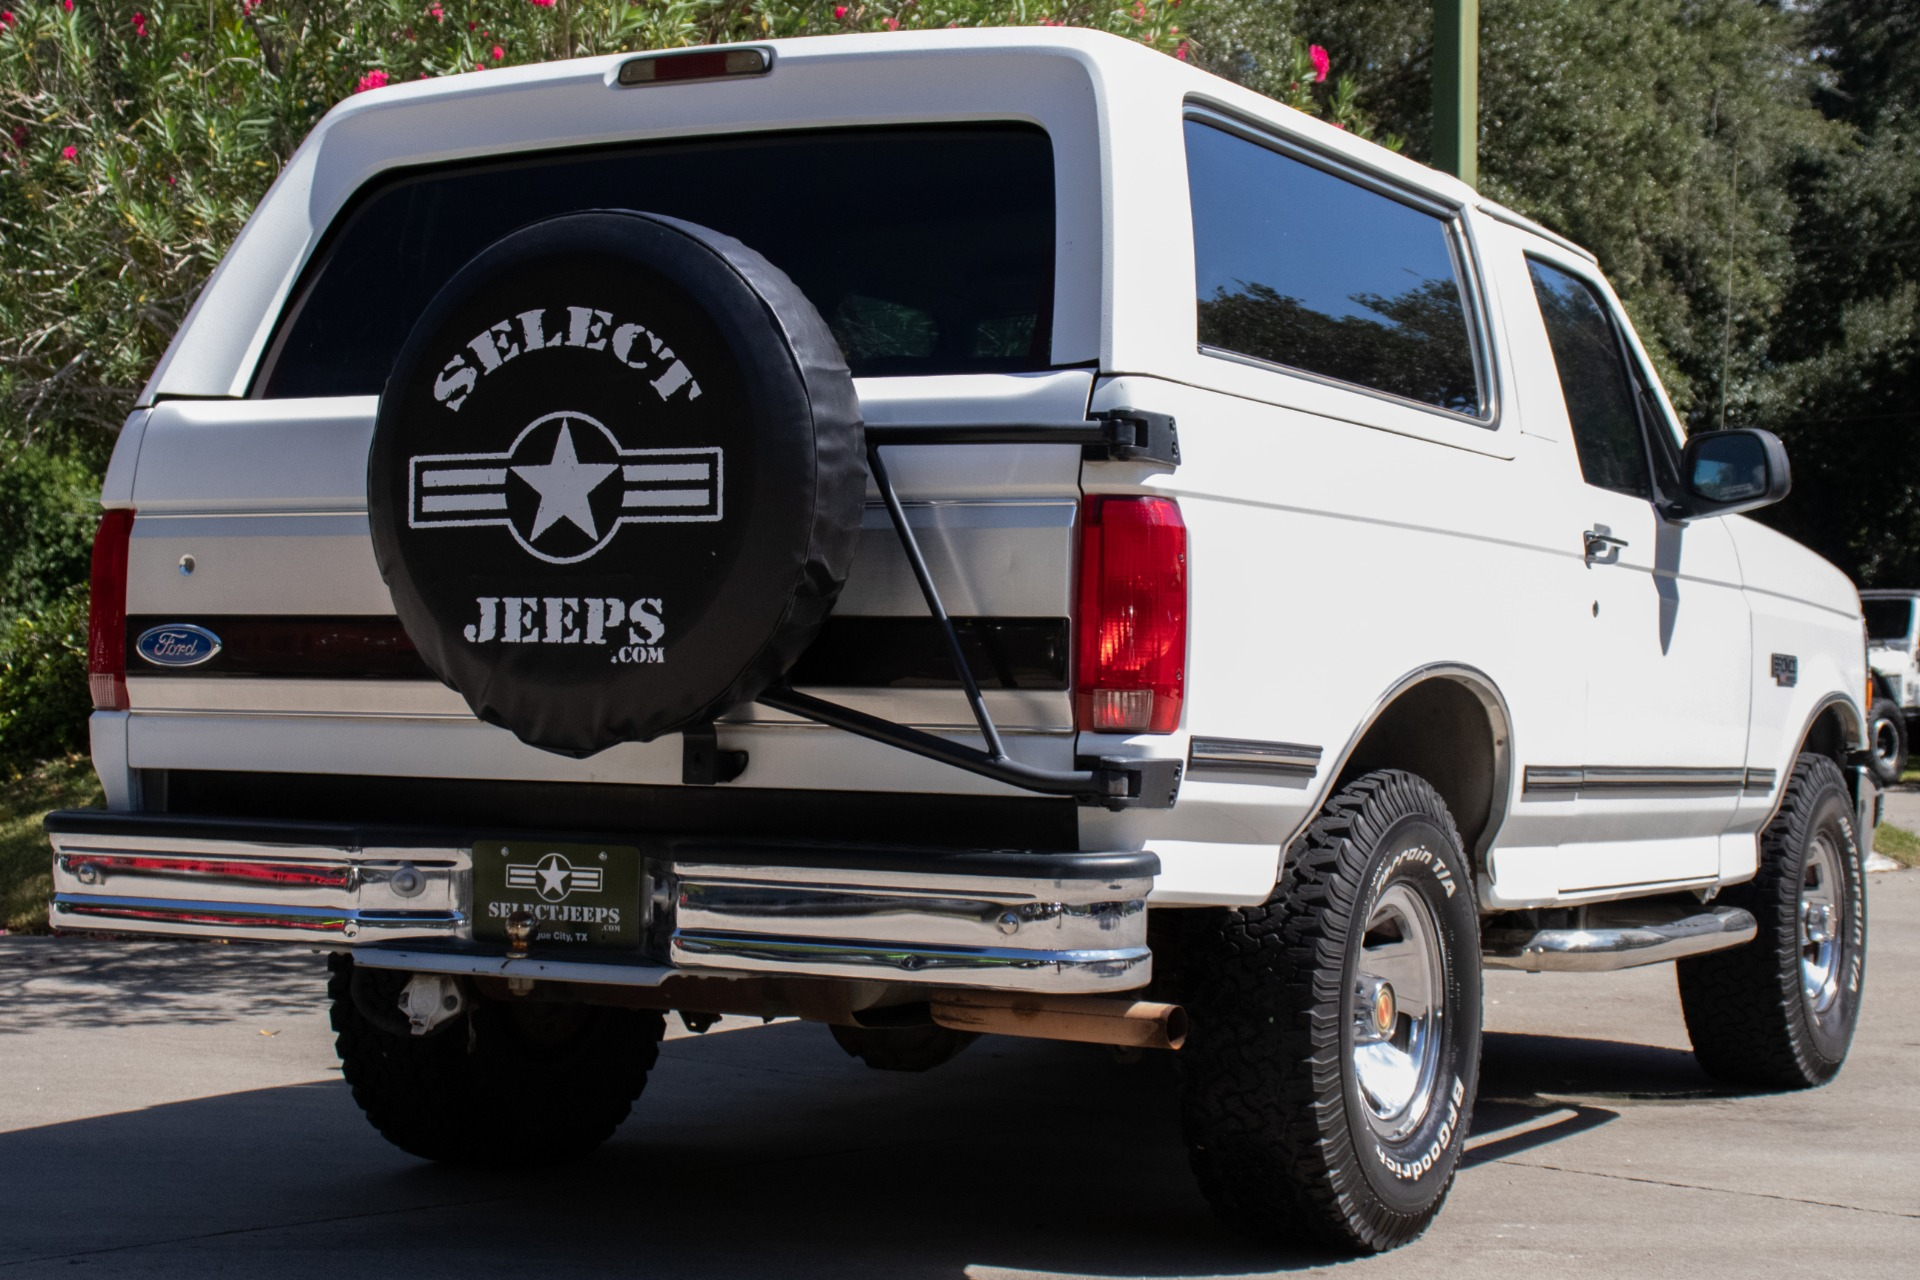 Used 1992 Ford Bronco XLT For Sale ($16,995) | Select ...